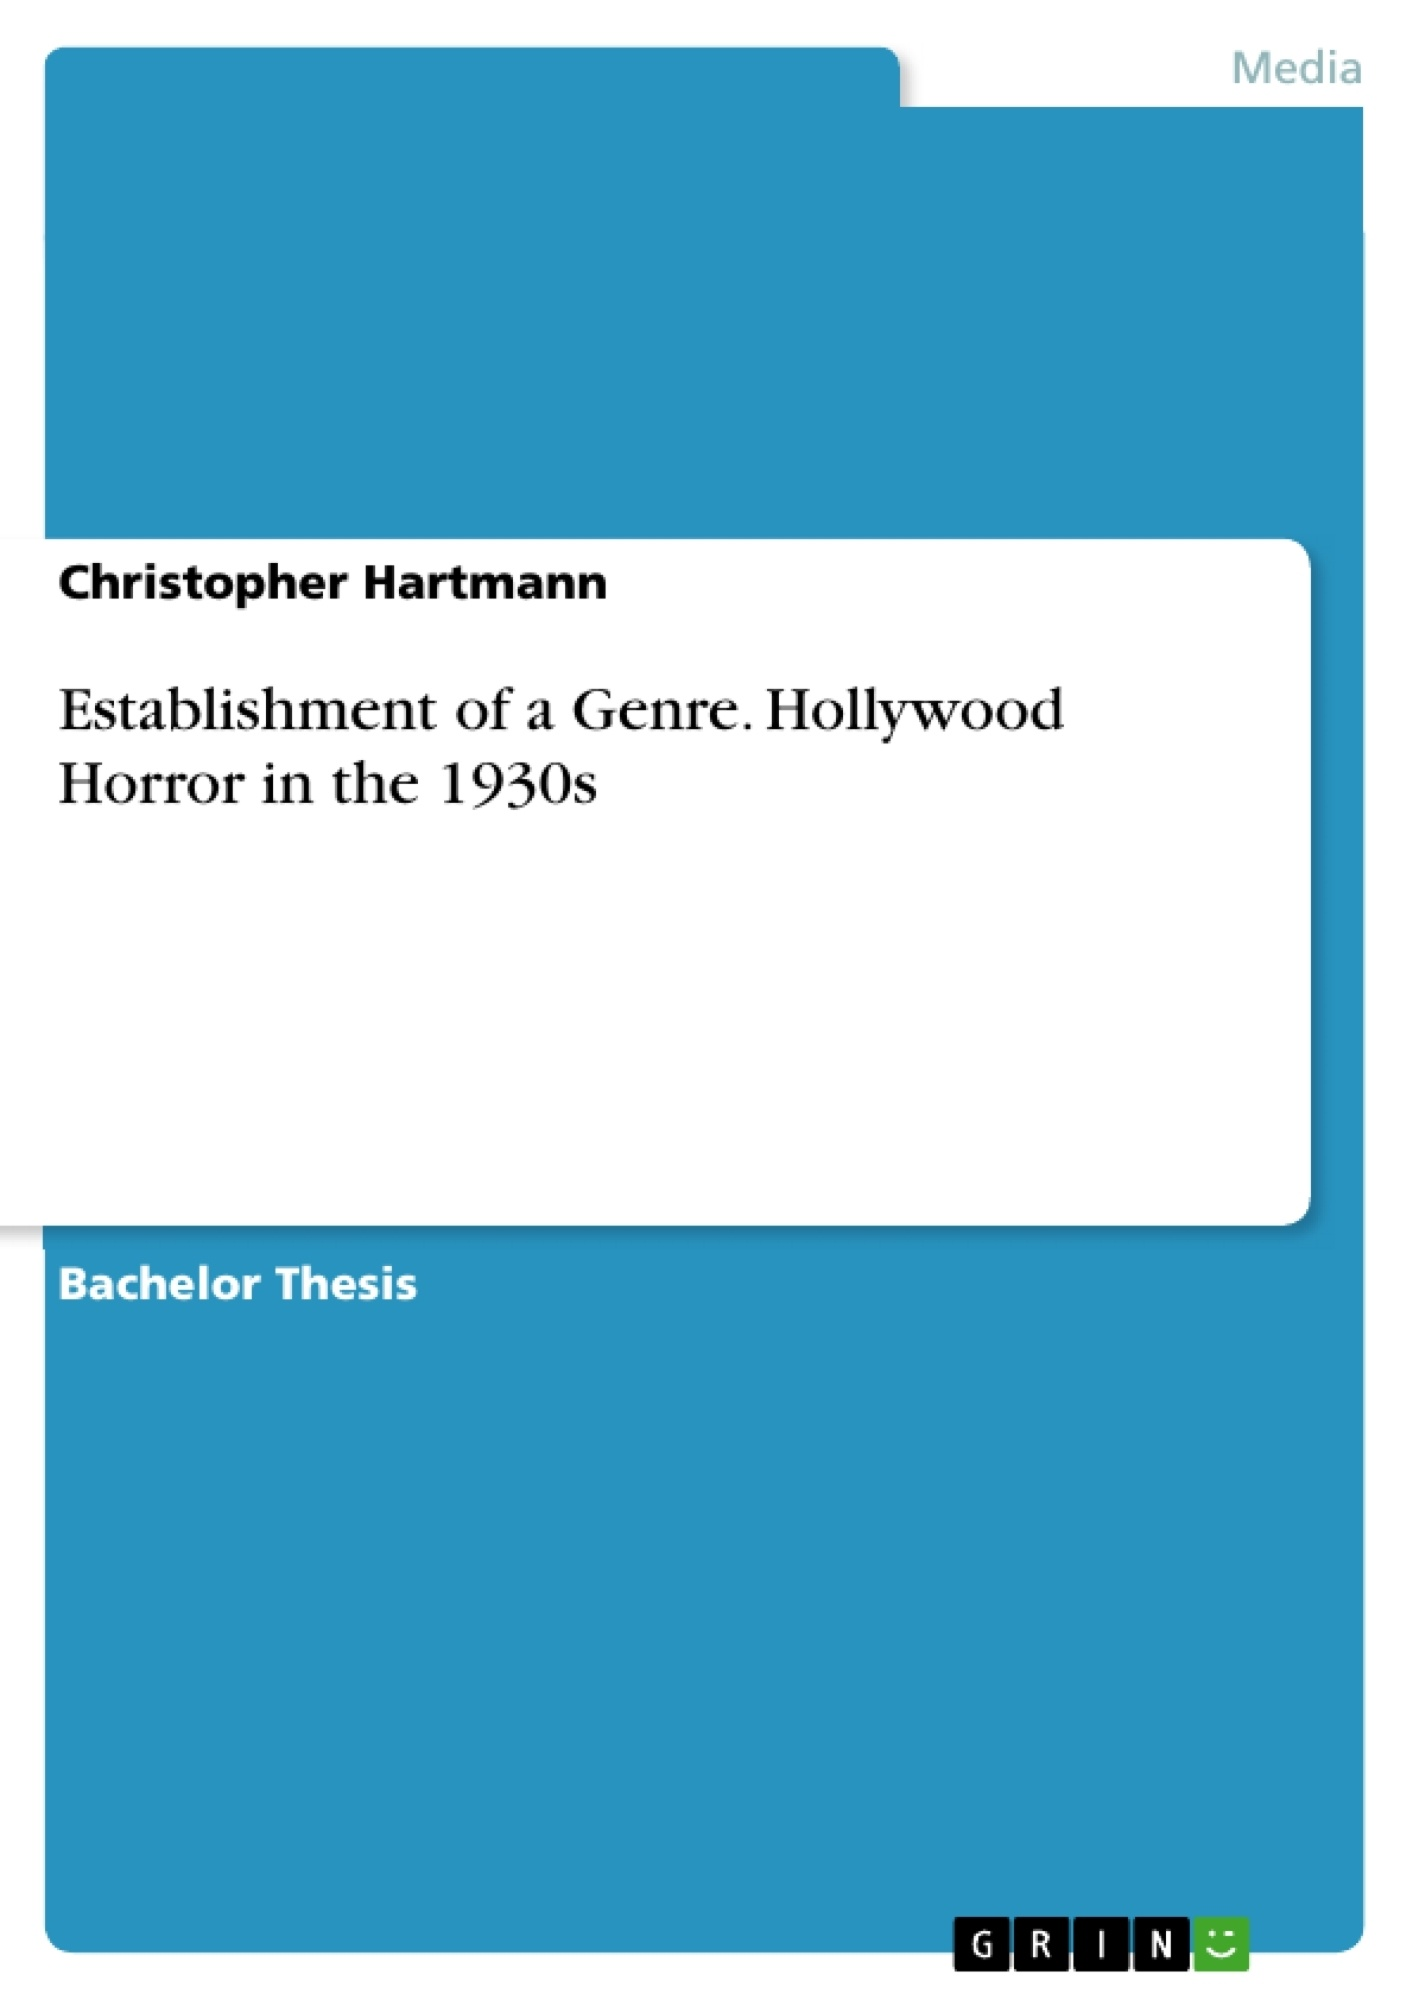 Title: Establishment of a Genre. Hollywood Horror in the 1930s